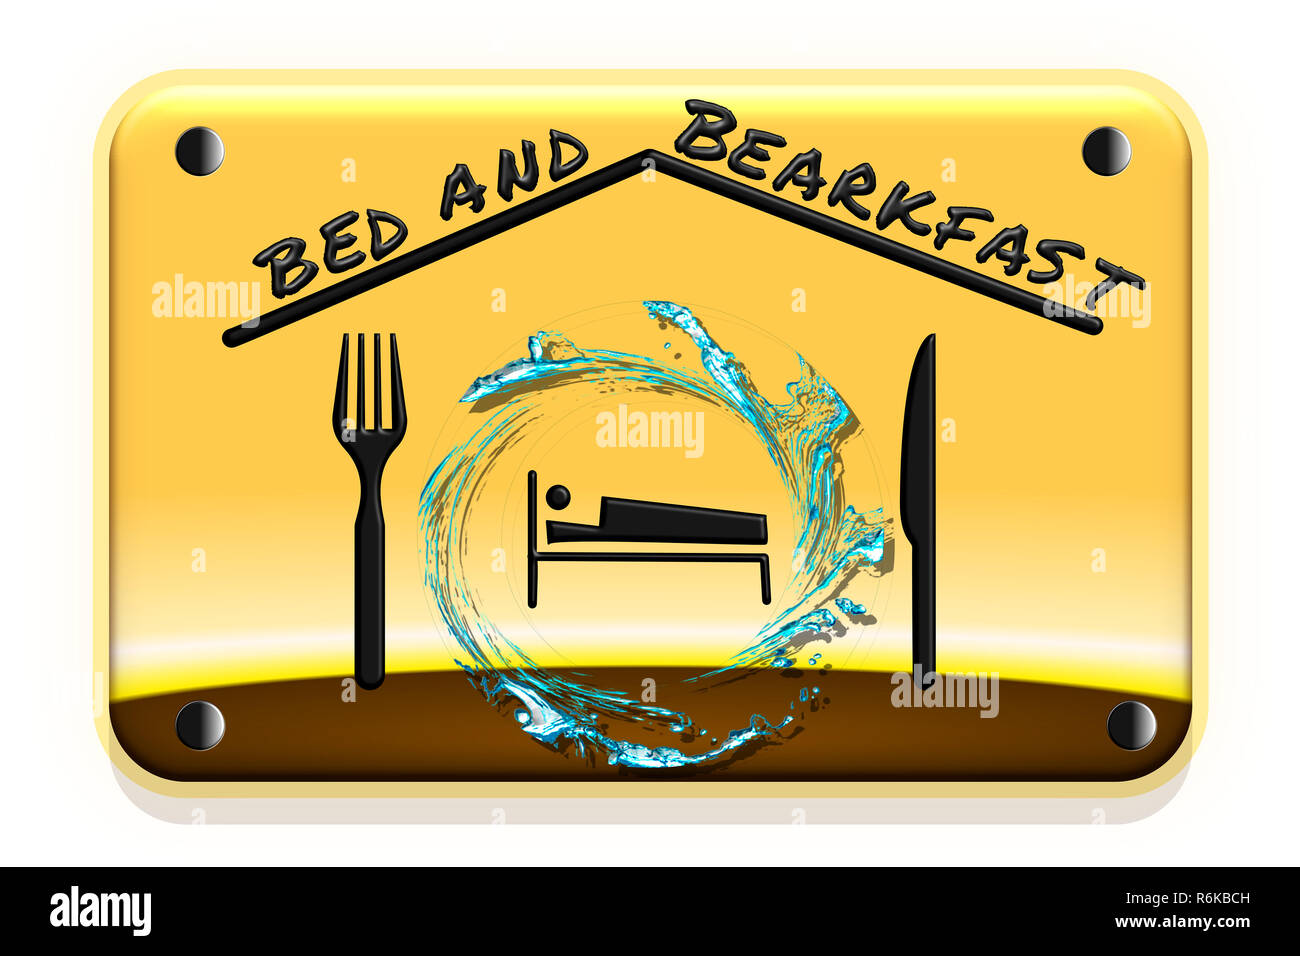 Illustration of a road sign with gradient background. Concept of bed and breakfast. Stock Photo